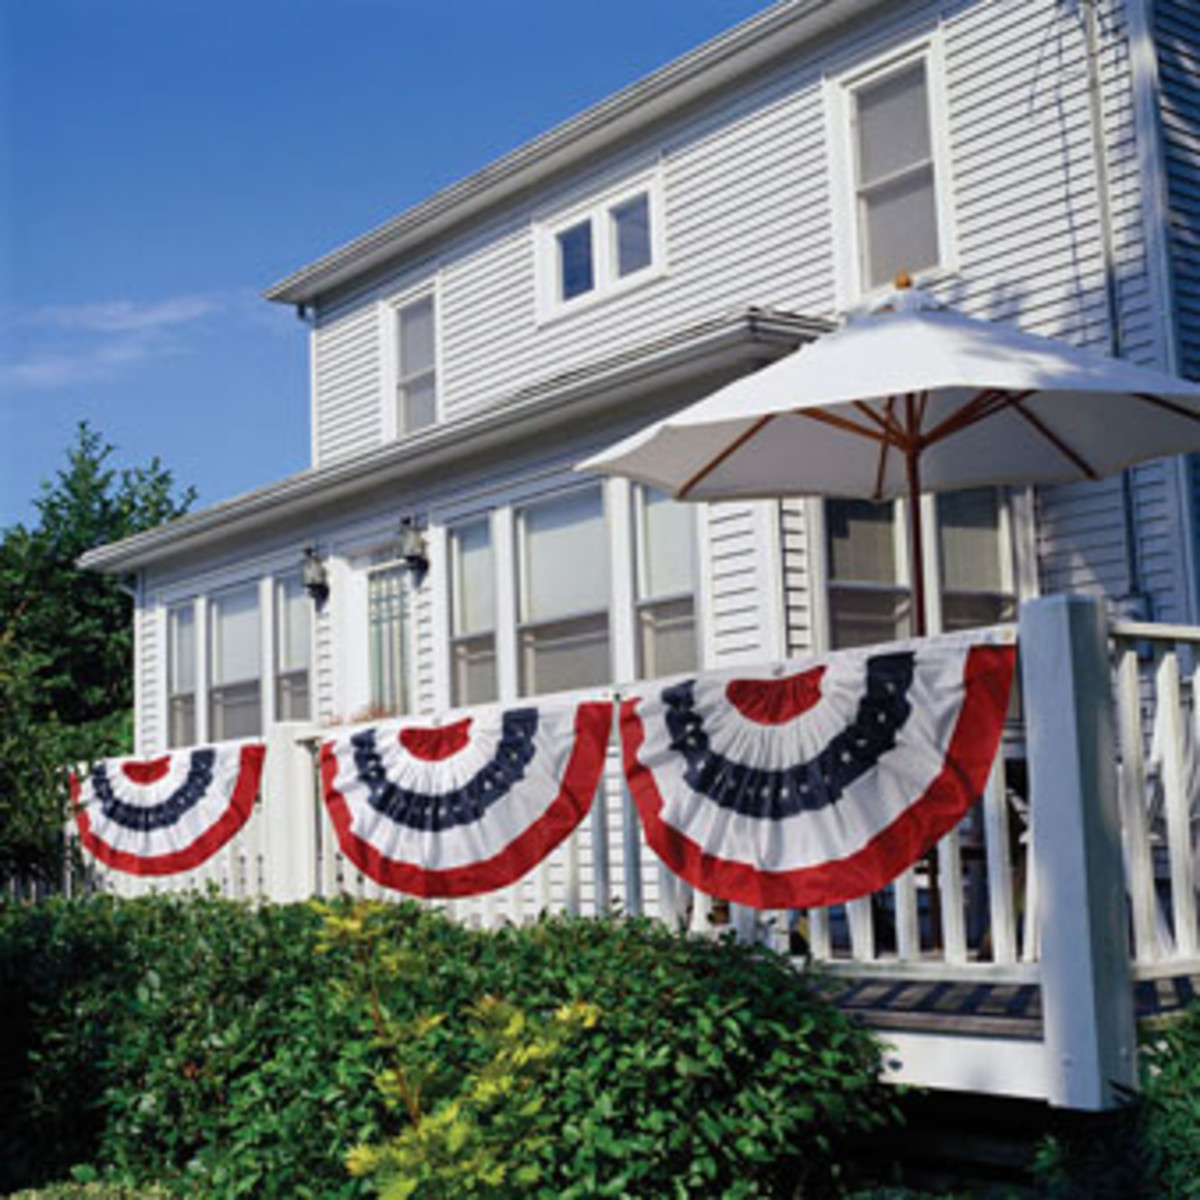 House decorated for the 4th of July celebration